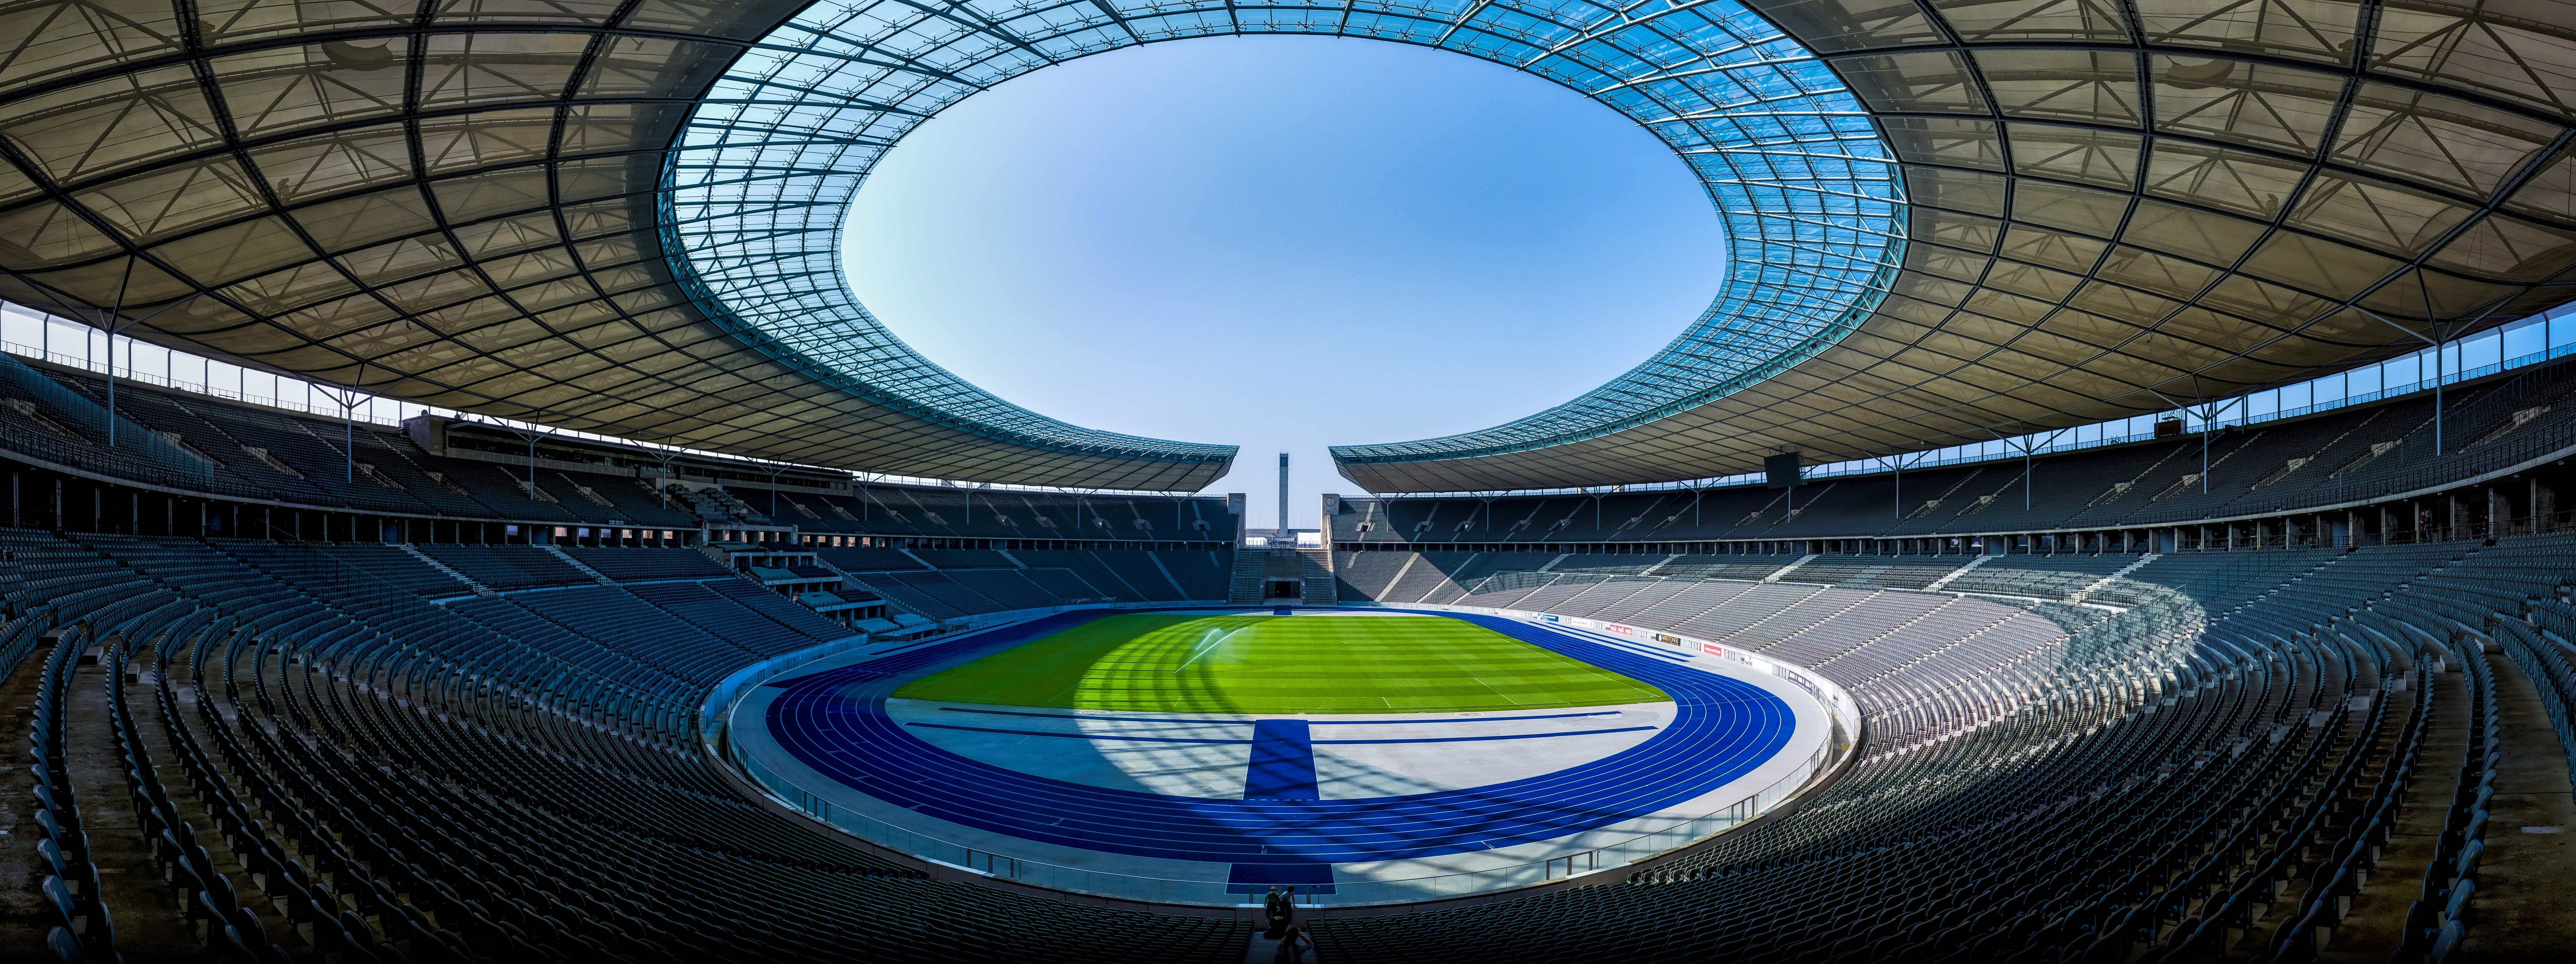 The Olympiastadion, during a Bundesliga game between Hertha Berlin and  Borussia Dortmund in 2014.